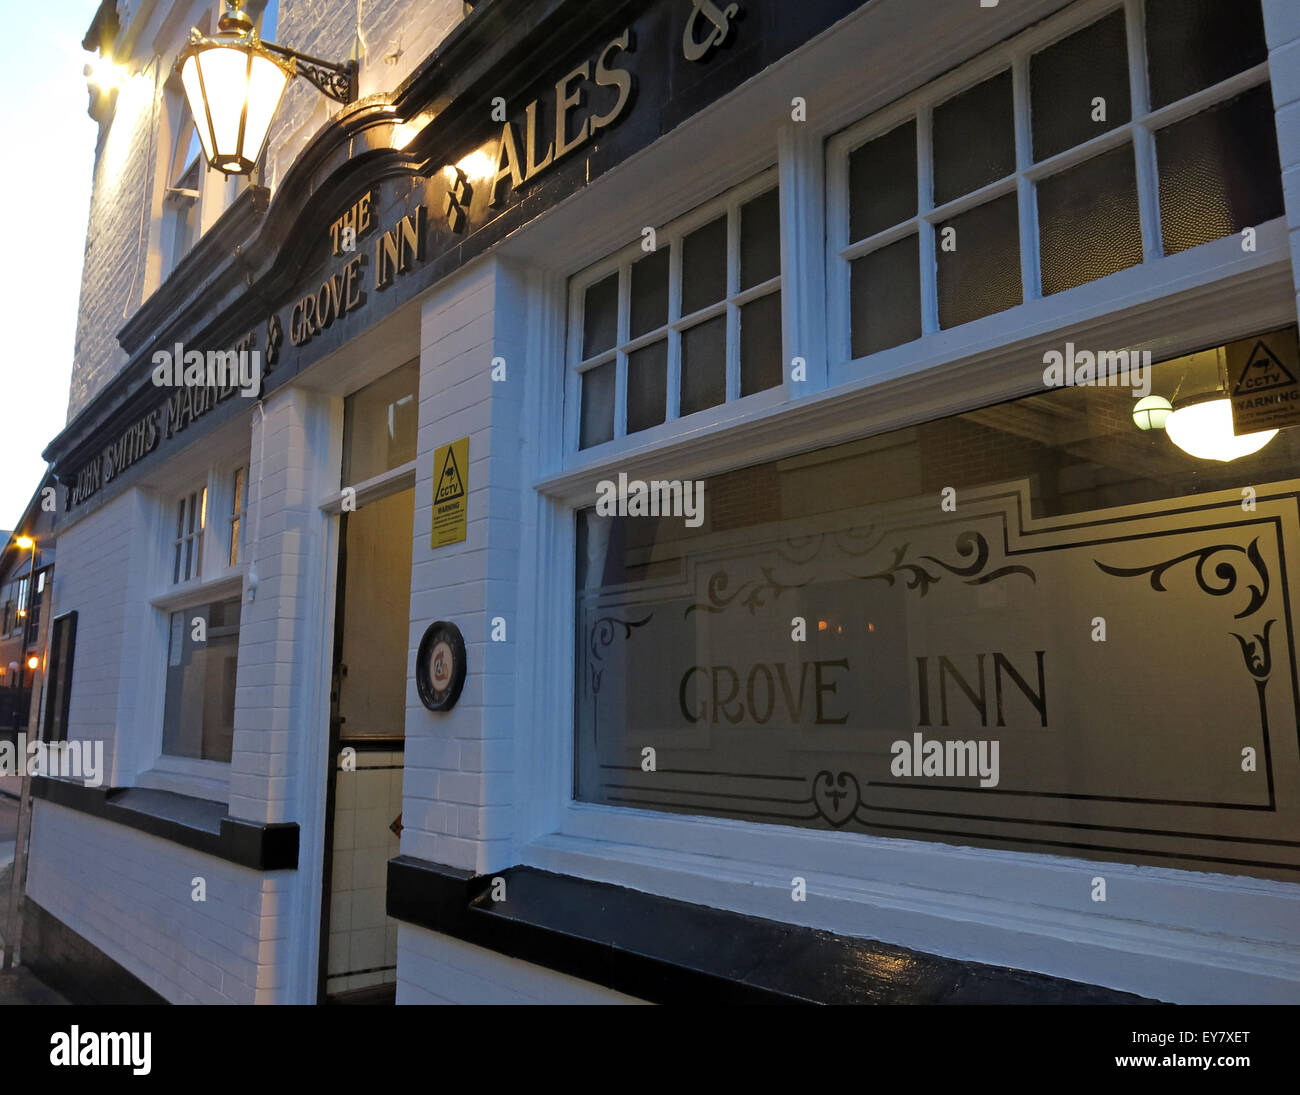 Grove Inn Pub, Back Row, Leeds, West Yorkshire,England,UK at dusk Stock Photo